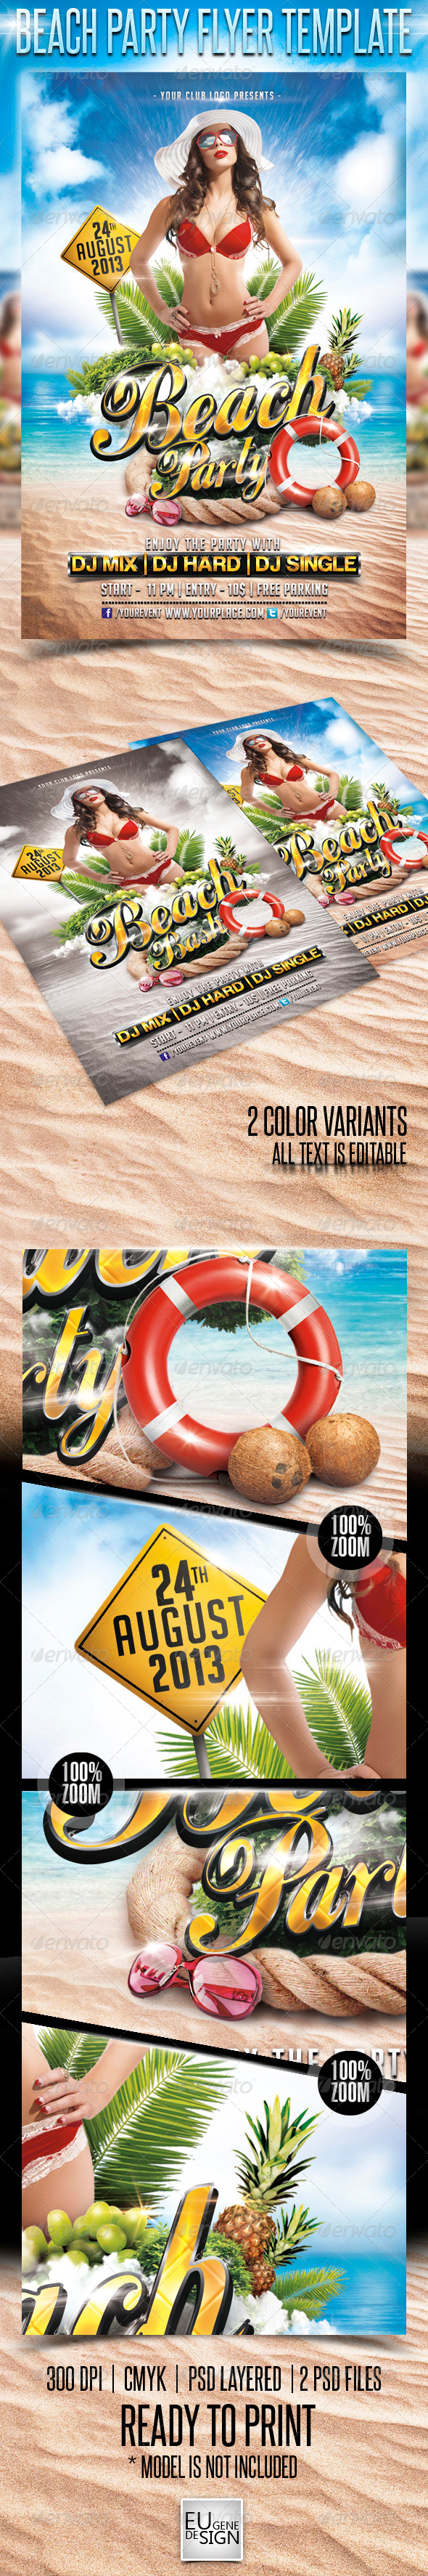 Beach Party Flyer Template - Flyers Print Templates